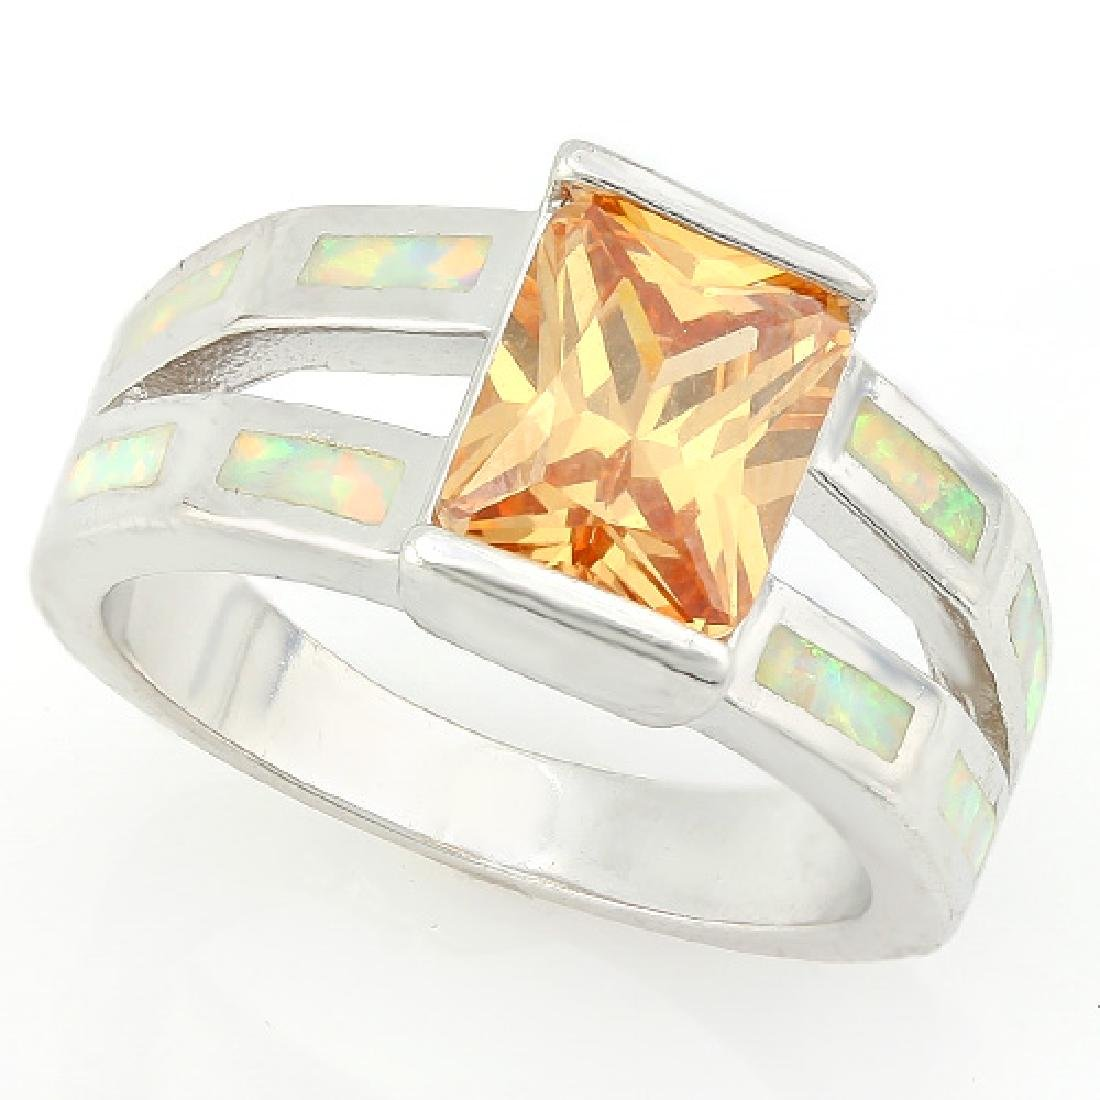 1 1/2 CARAT CREATED ORANGE SAPPHIRE & 2 CARAT CREATED F